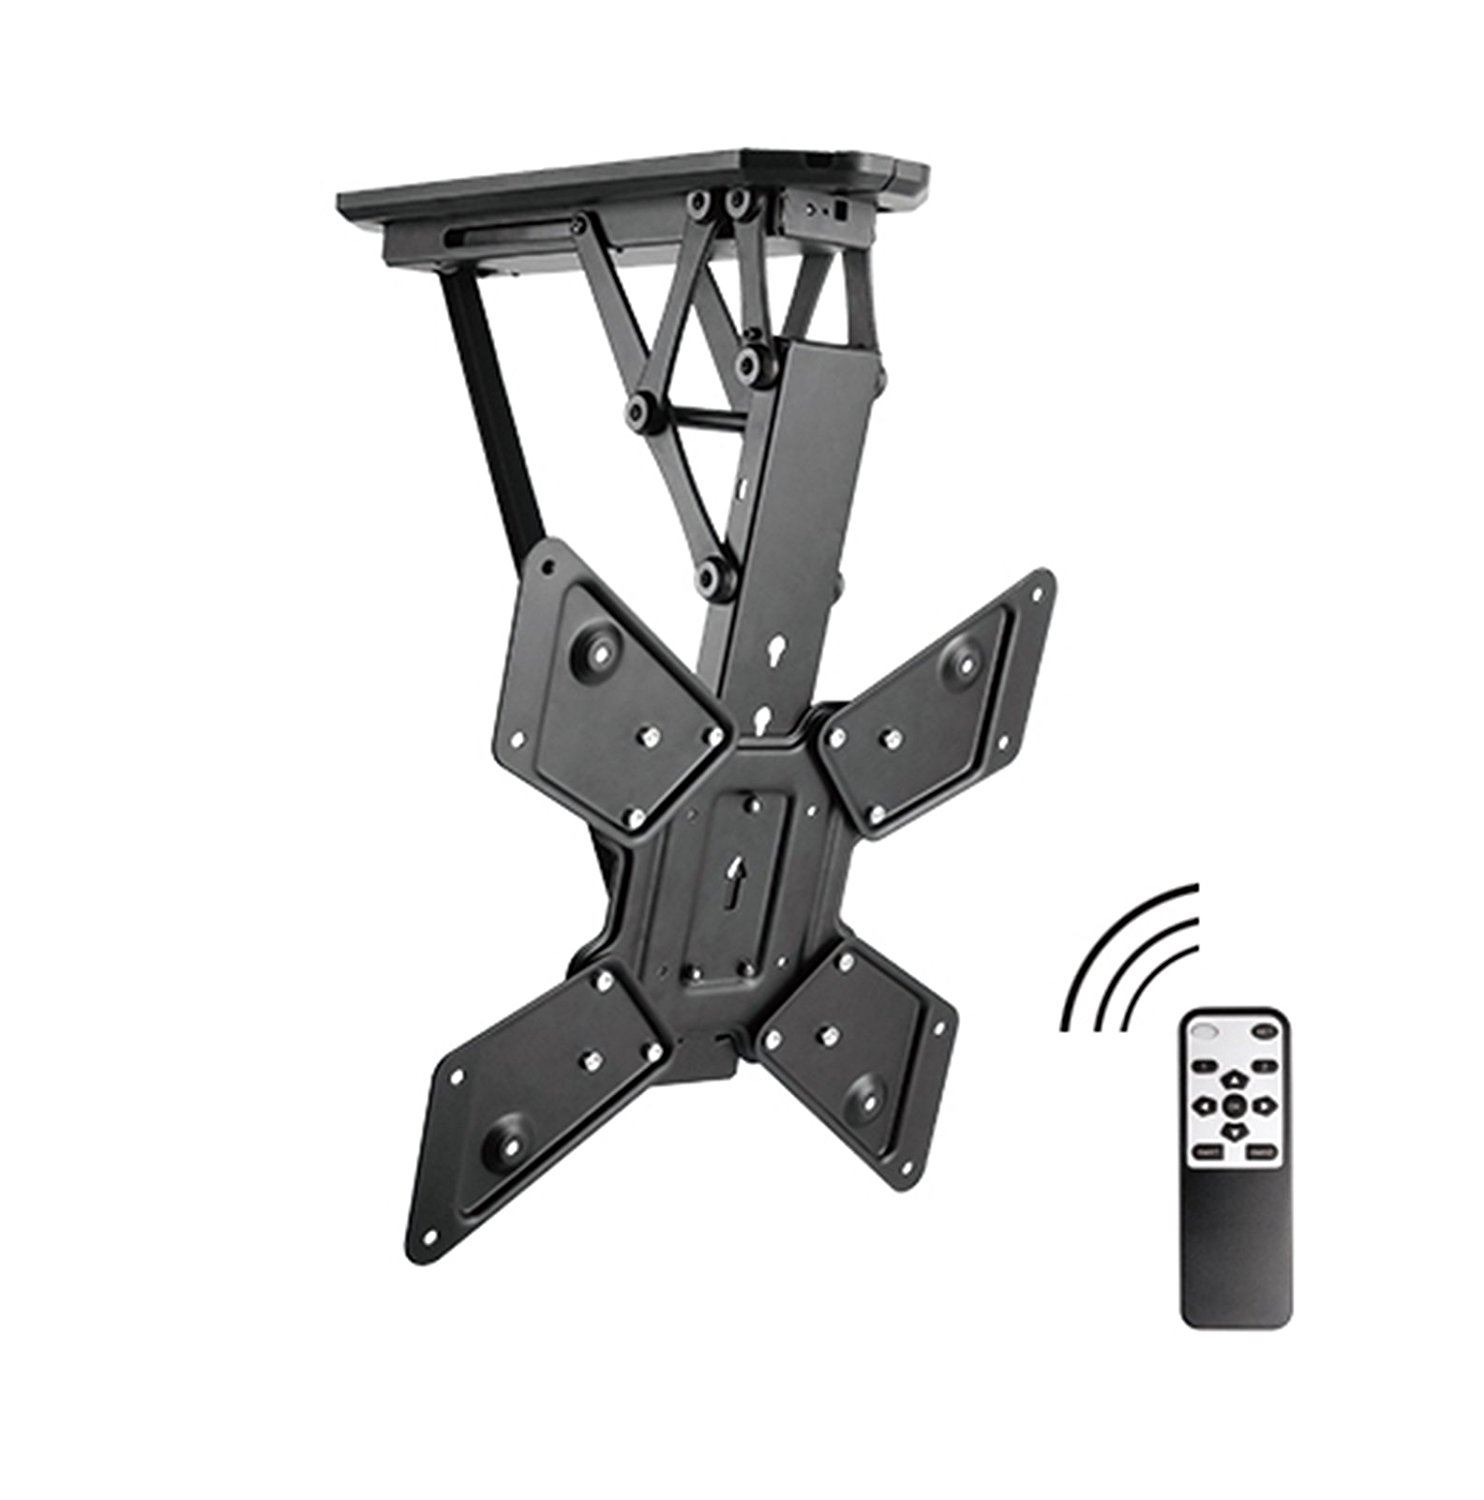 allcam electric motorised tv bracket ceiling mount w storage viewing position ebay. Black Bedroom Furniture Sets. Home Design Ideas